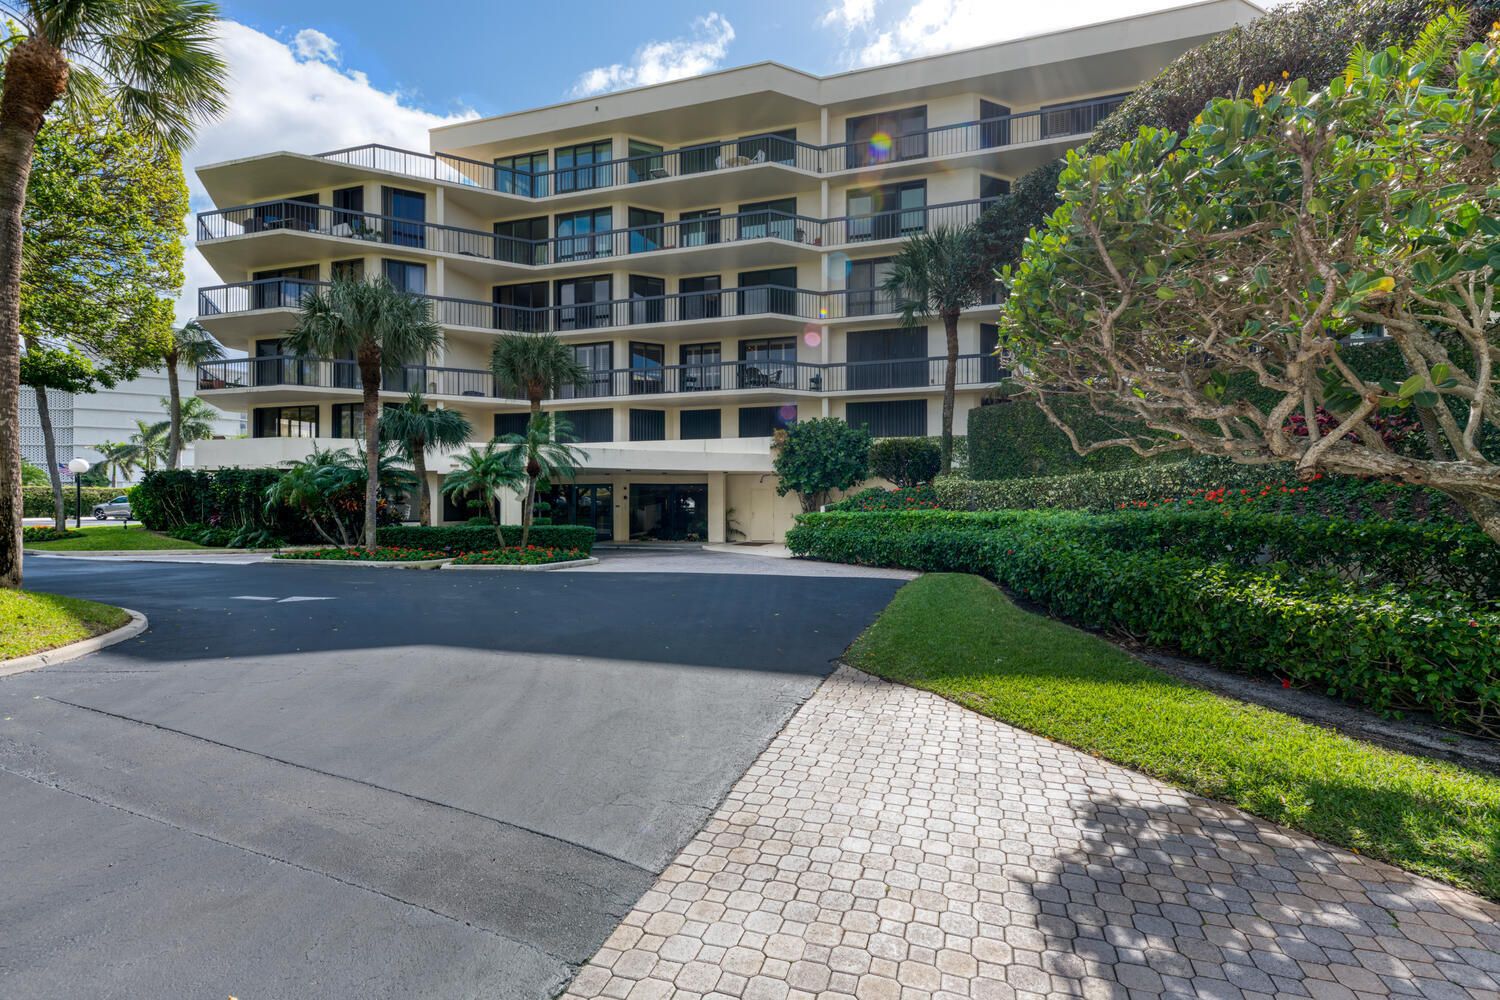 Sutton Place is the only Intracoastal condo in Palm Beach with garage parking priced under 2 million.This large renovated corner 3 bedroom 3 bath unit has a wrap around balcony in a desirable full amenity building with 24 hr doorman, new gym, hallways and clubhouse on the pool deck. Gated deeded beach access gives owners the enjoyment of both ocean and intracoastal waterway to view the boats or play in the sand and surf. The Four Seasons resort and Spa is just across the street and restaurants, shopping and Par 3 Golf Course are within a walk or close drive. Parking spaces 34 garage and #38 out.